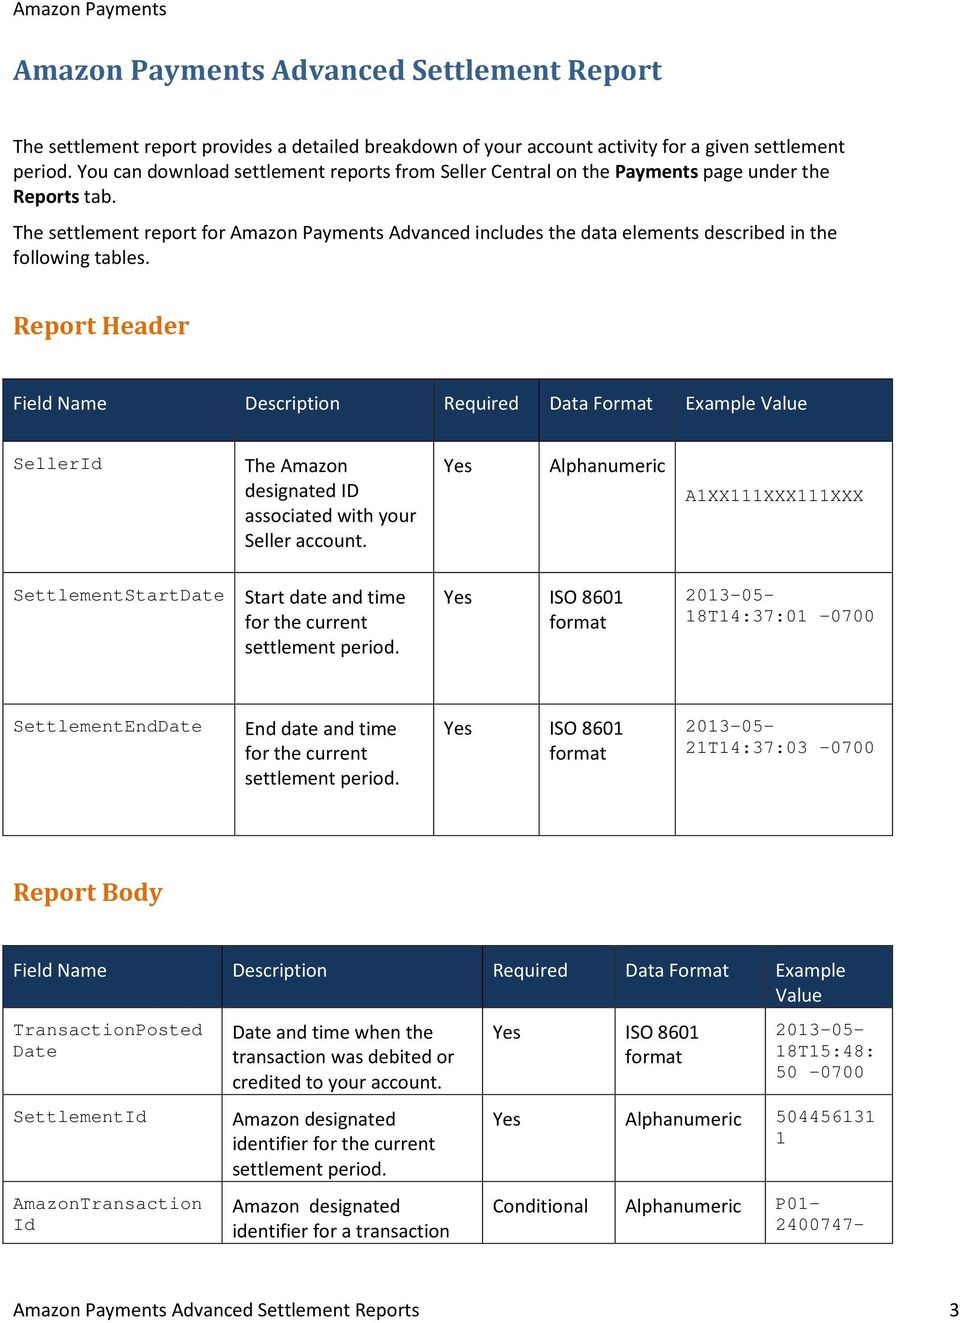 The settlement report for Amazon Payments Advanced includes the data elements described in the tables.